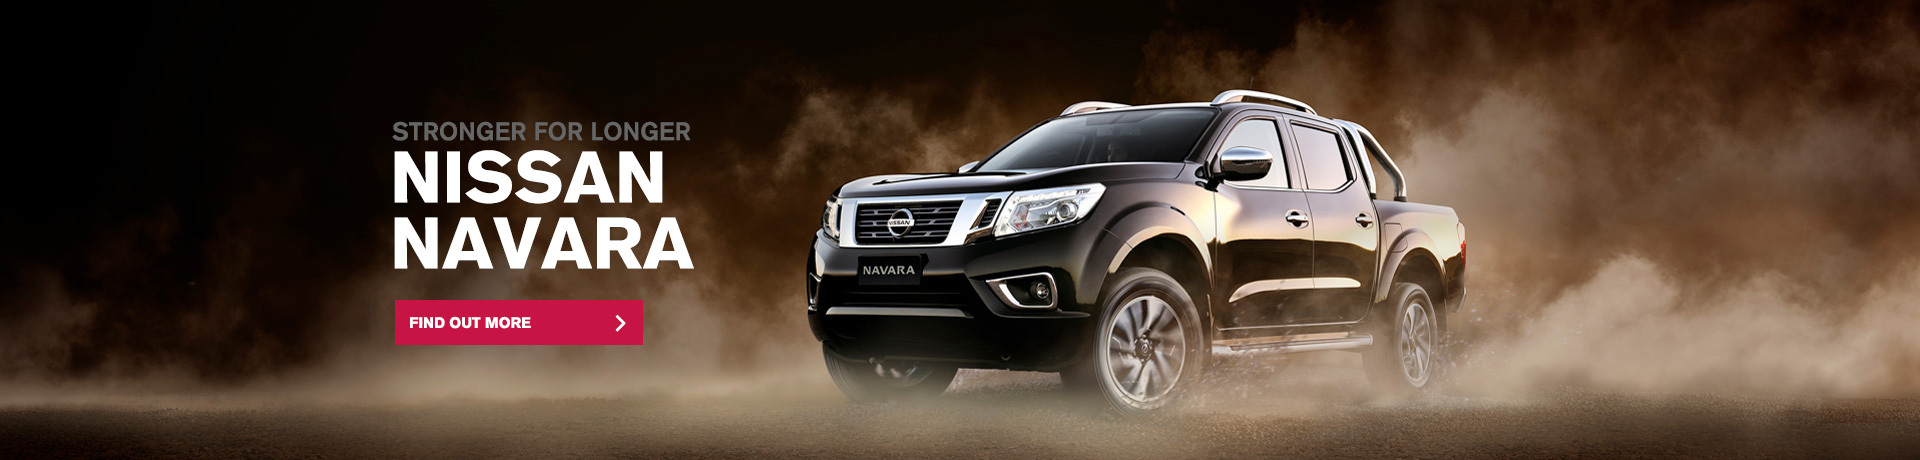 Nissan Navara - Stronger for Longer